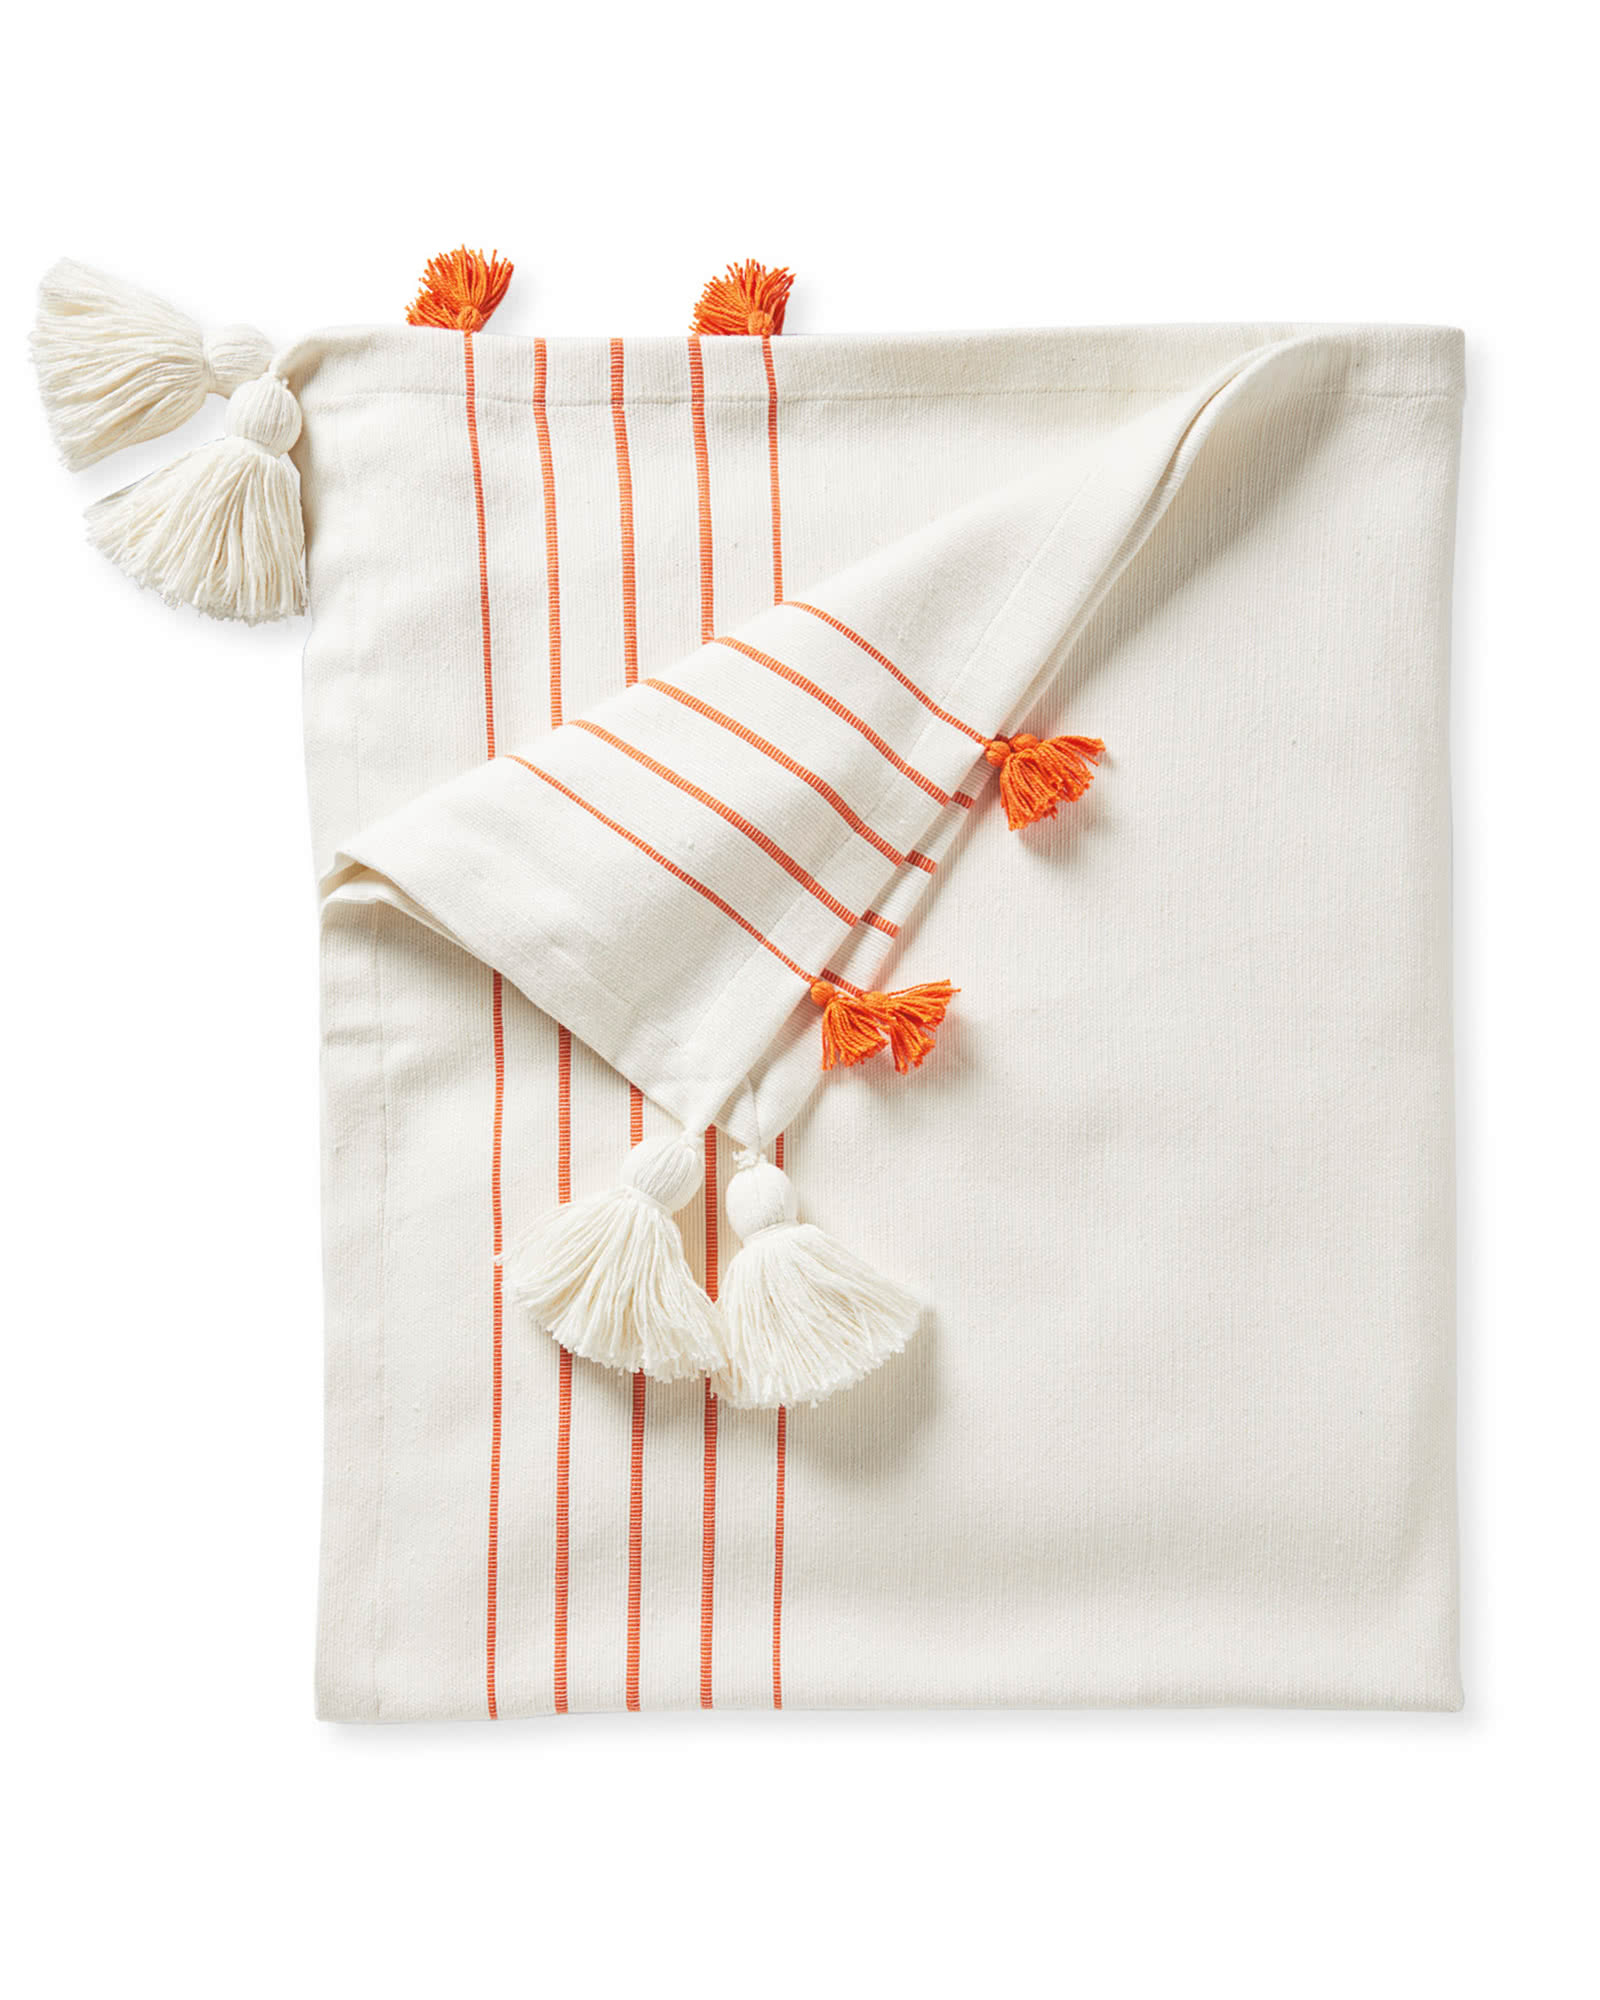 Del Mar Cotton Throw, Papaya